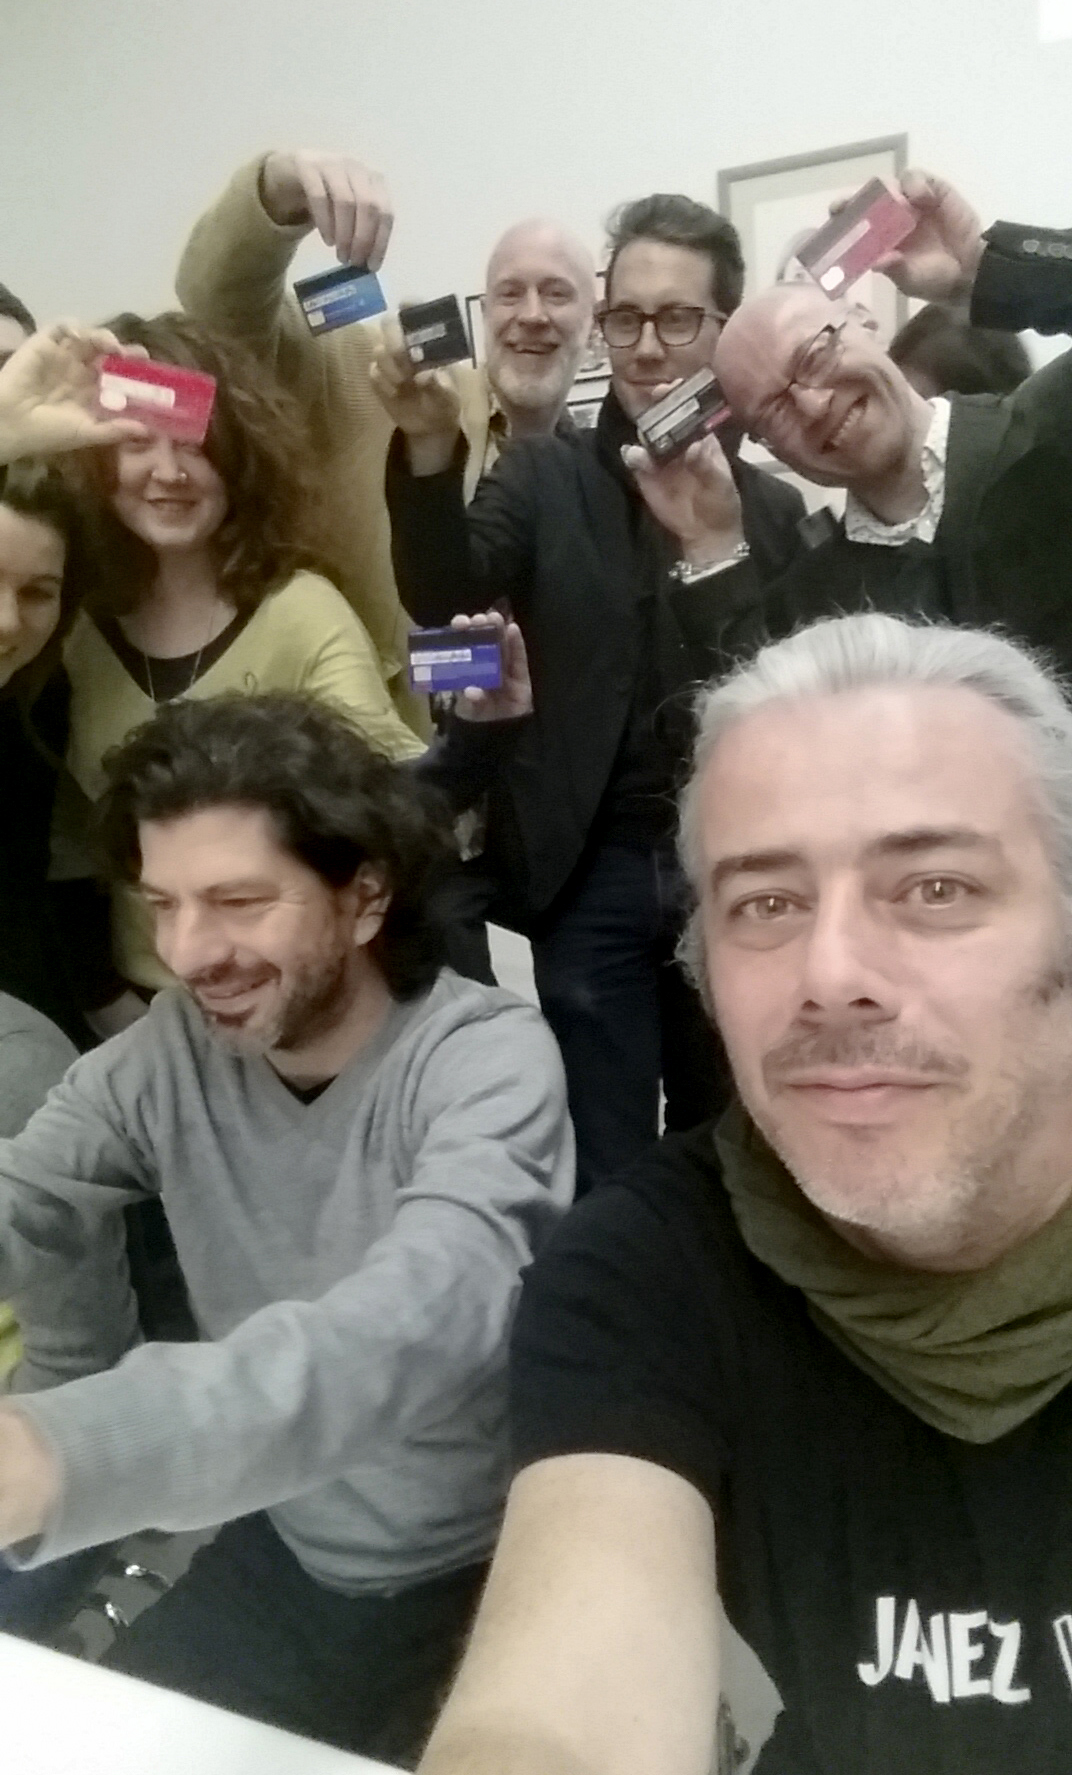 Group selfie with signed Credit Cards